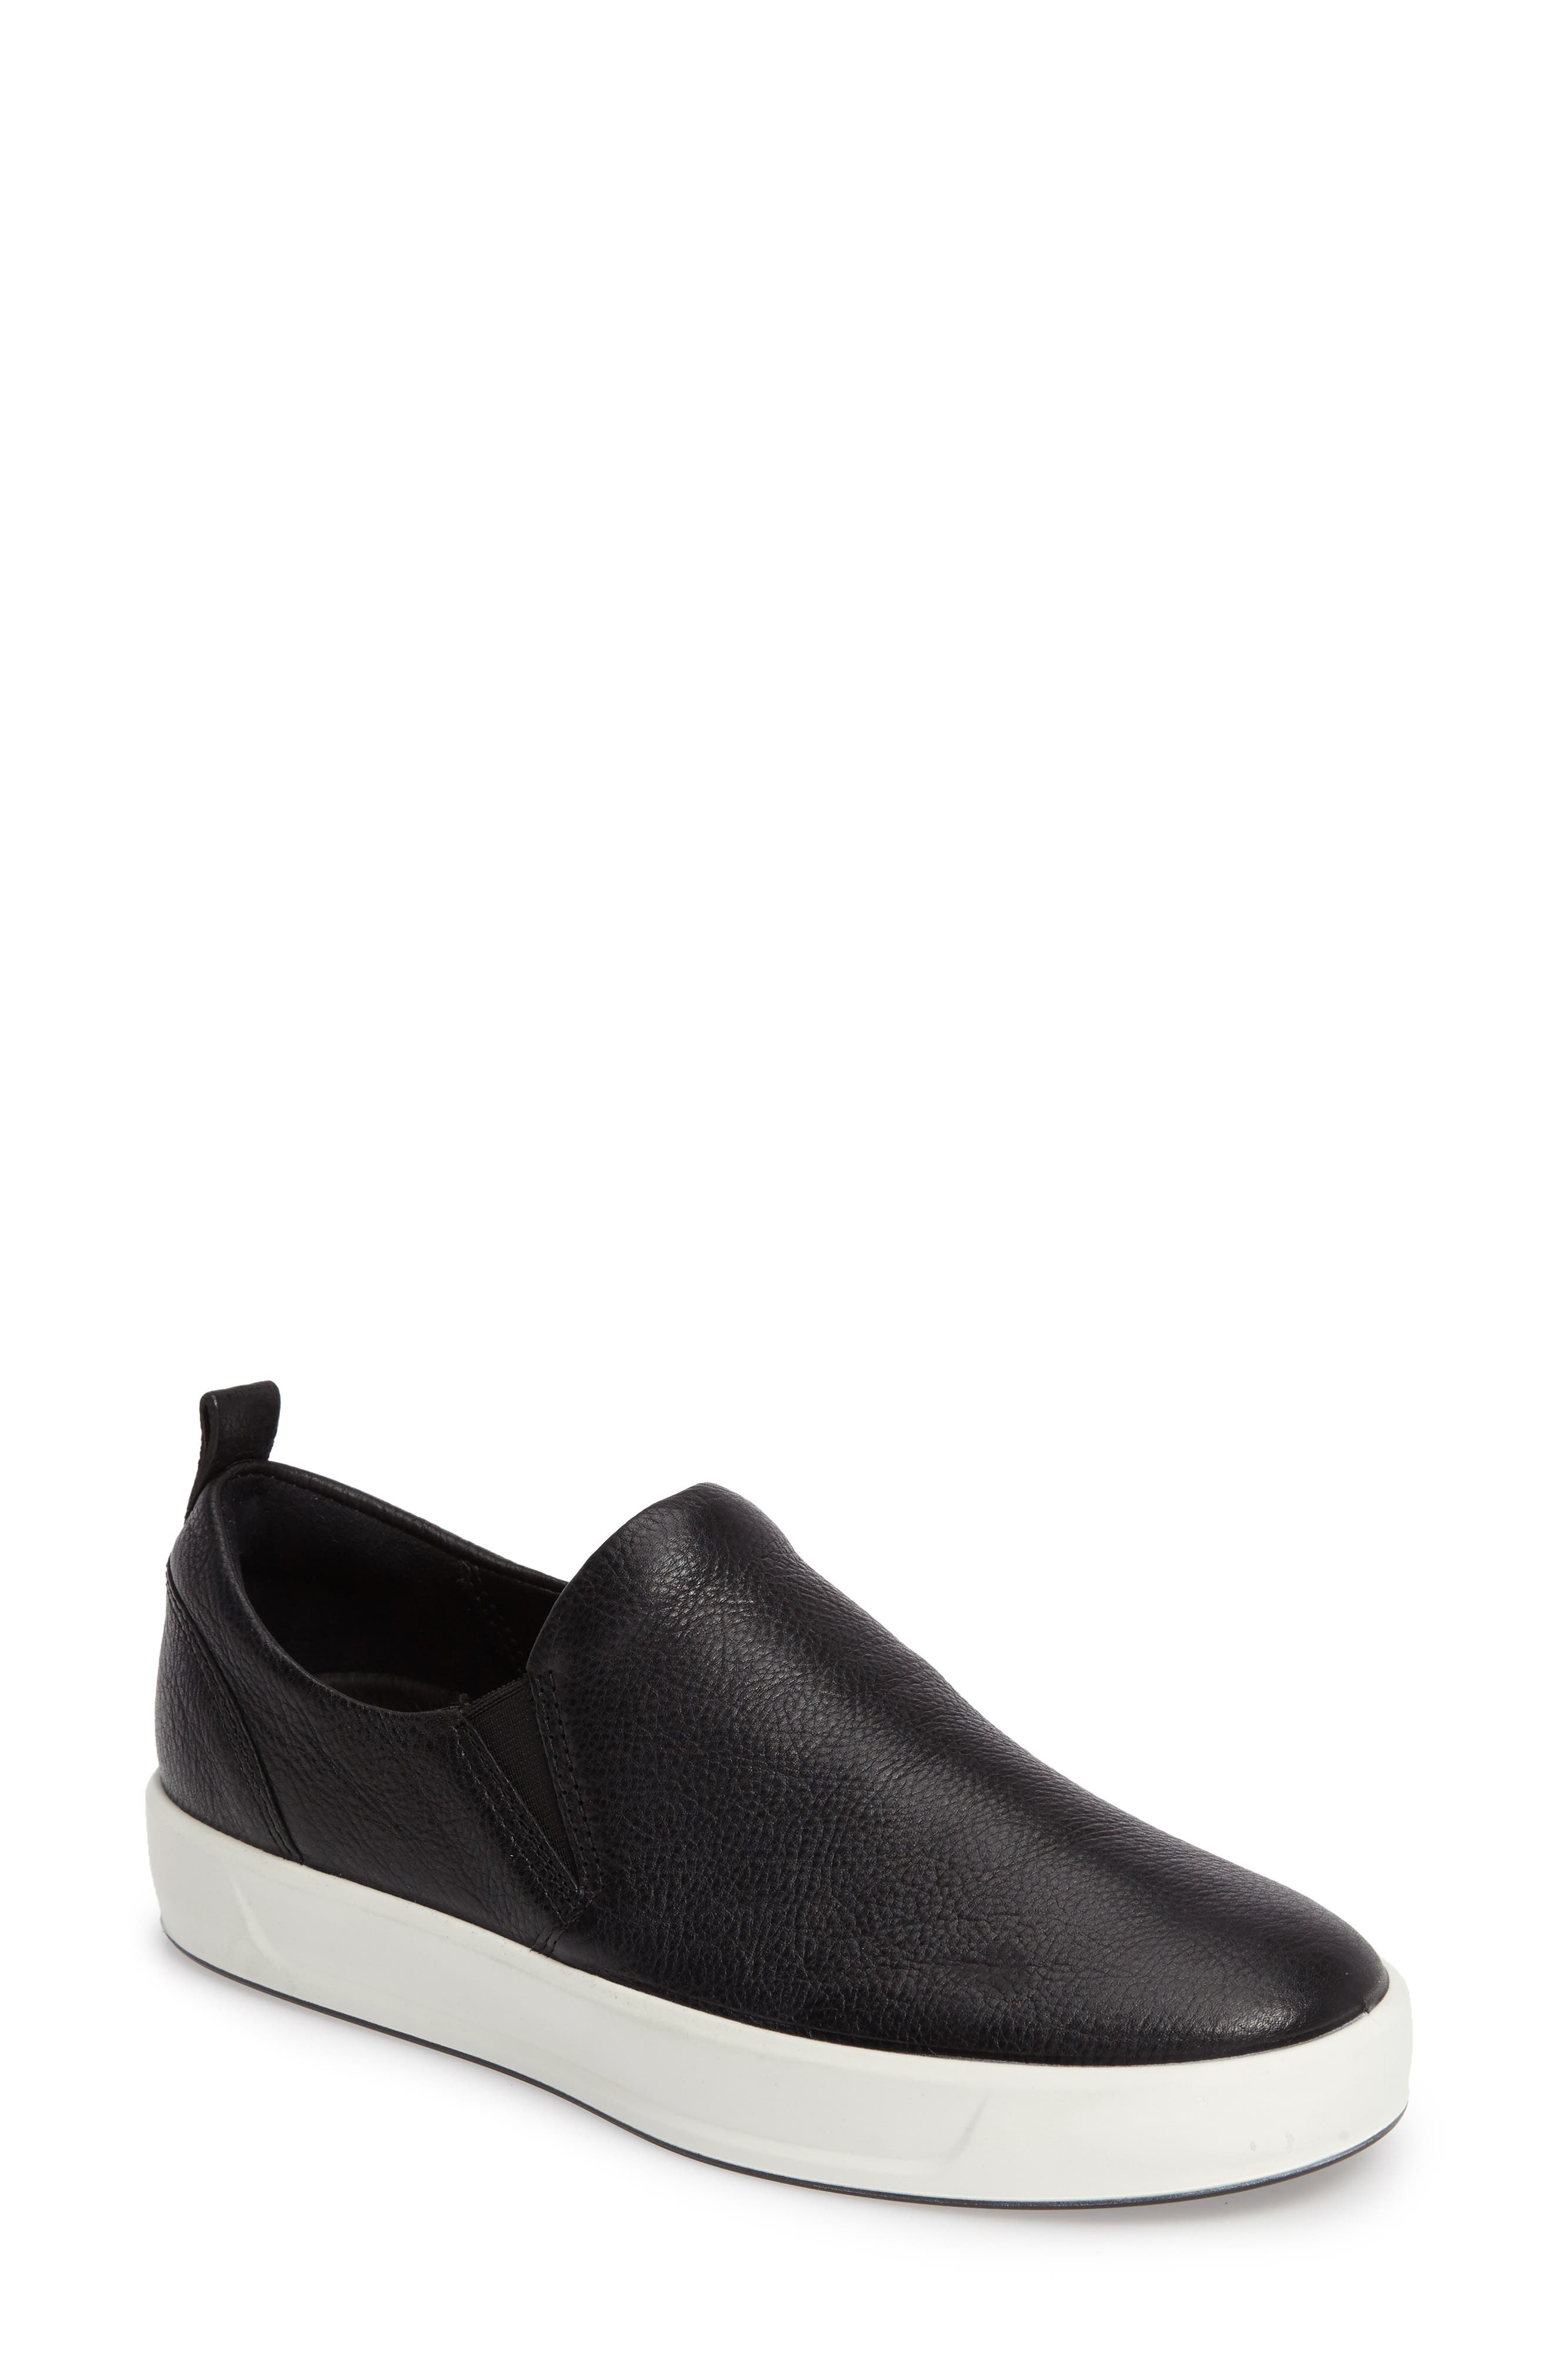 Alternate Image 1 Selected - ECCO Soft 8 Slip-On Sneaker (Women)